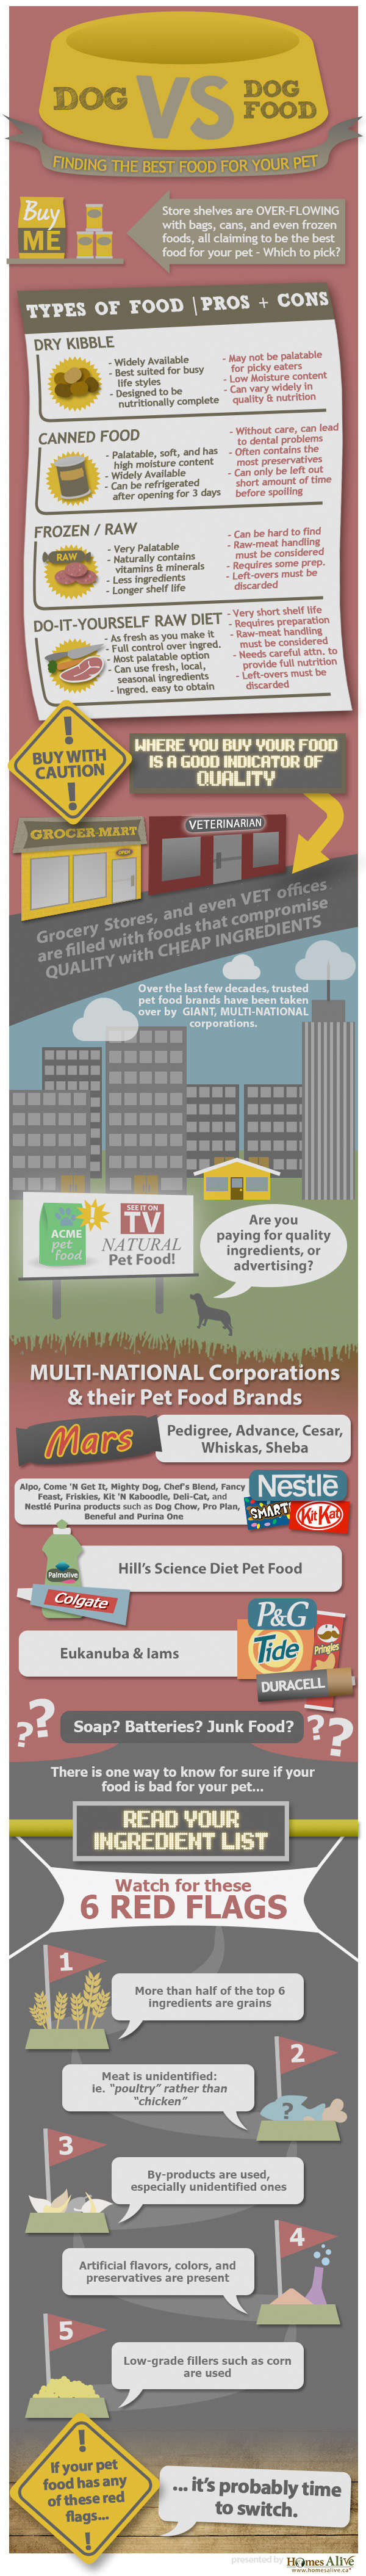 Differences Between All The Dog Foods, Brands & Marketing